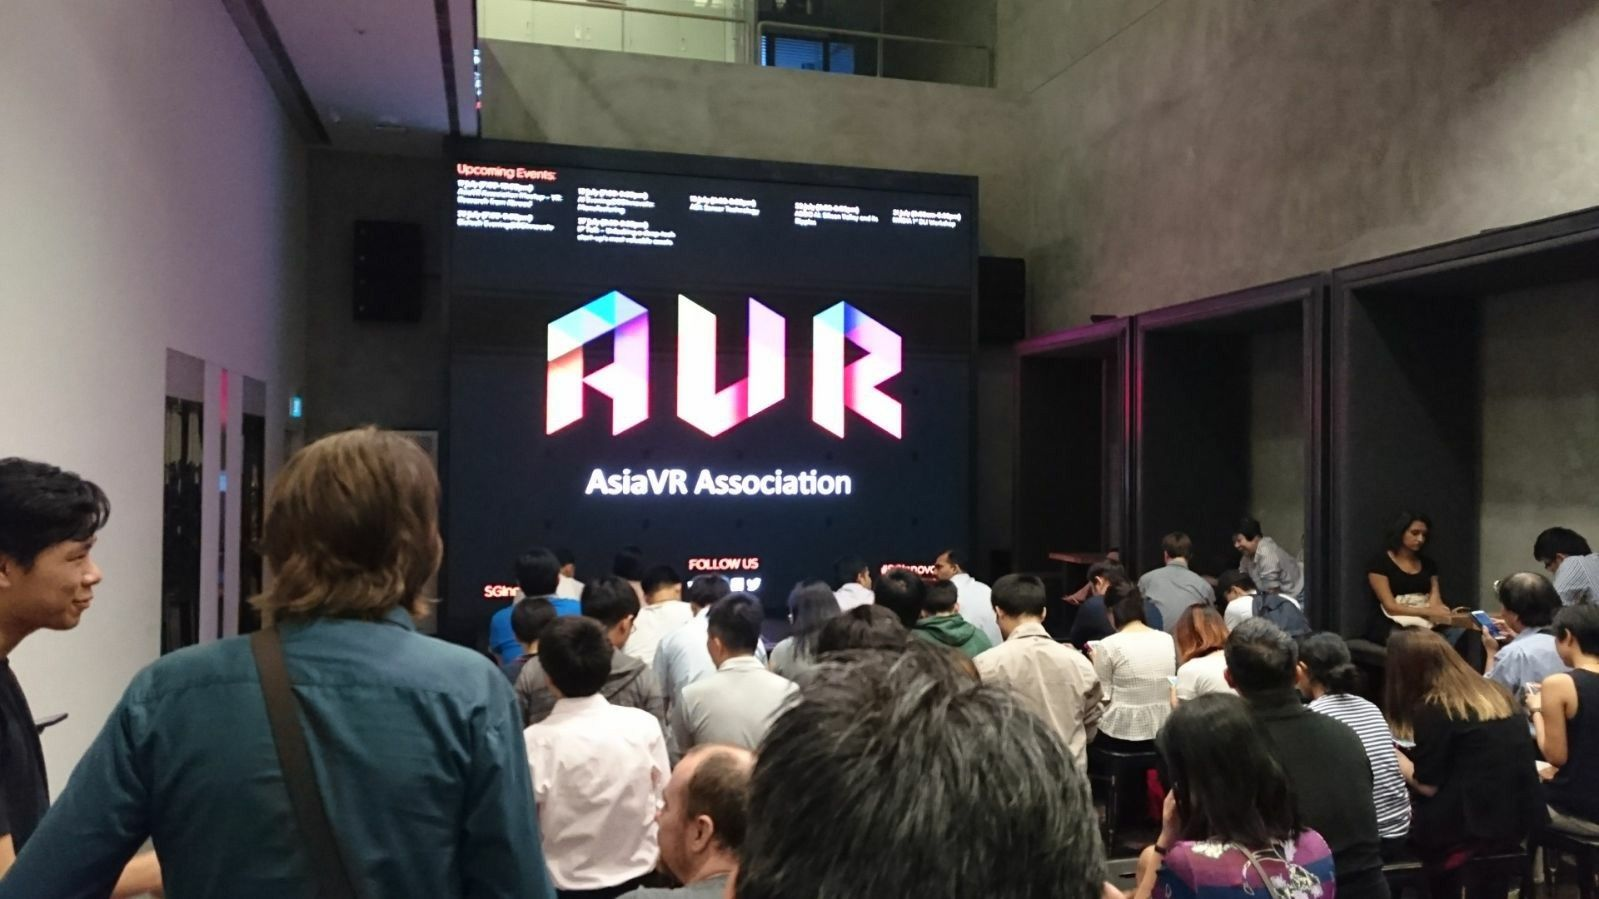 AsiaVR Association - Singapore Virtual Reality Meetup Group